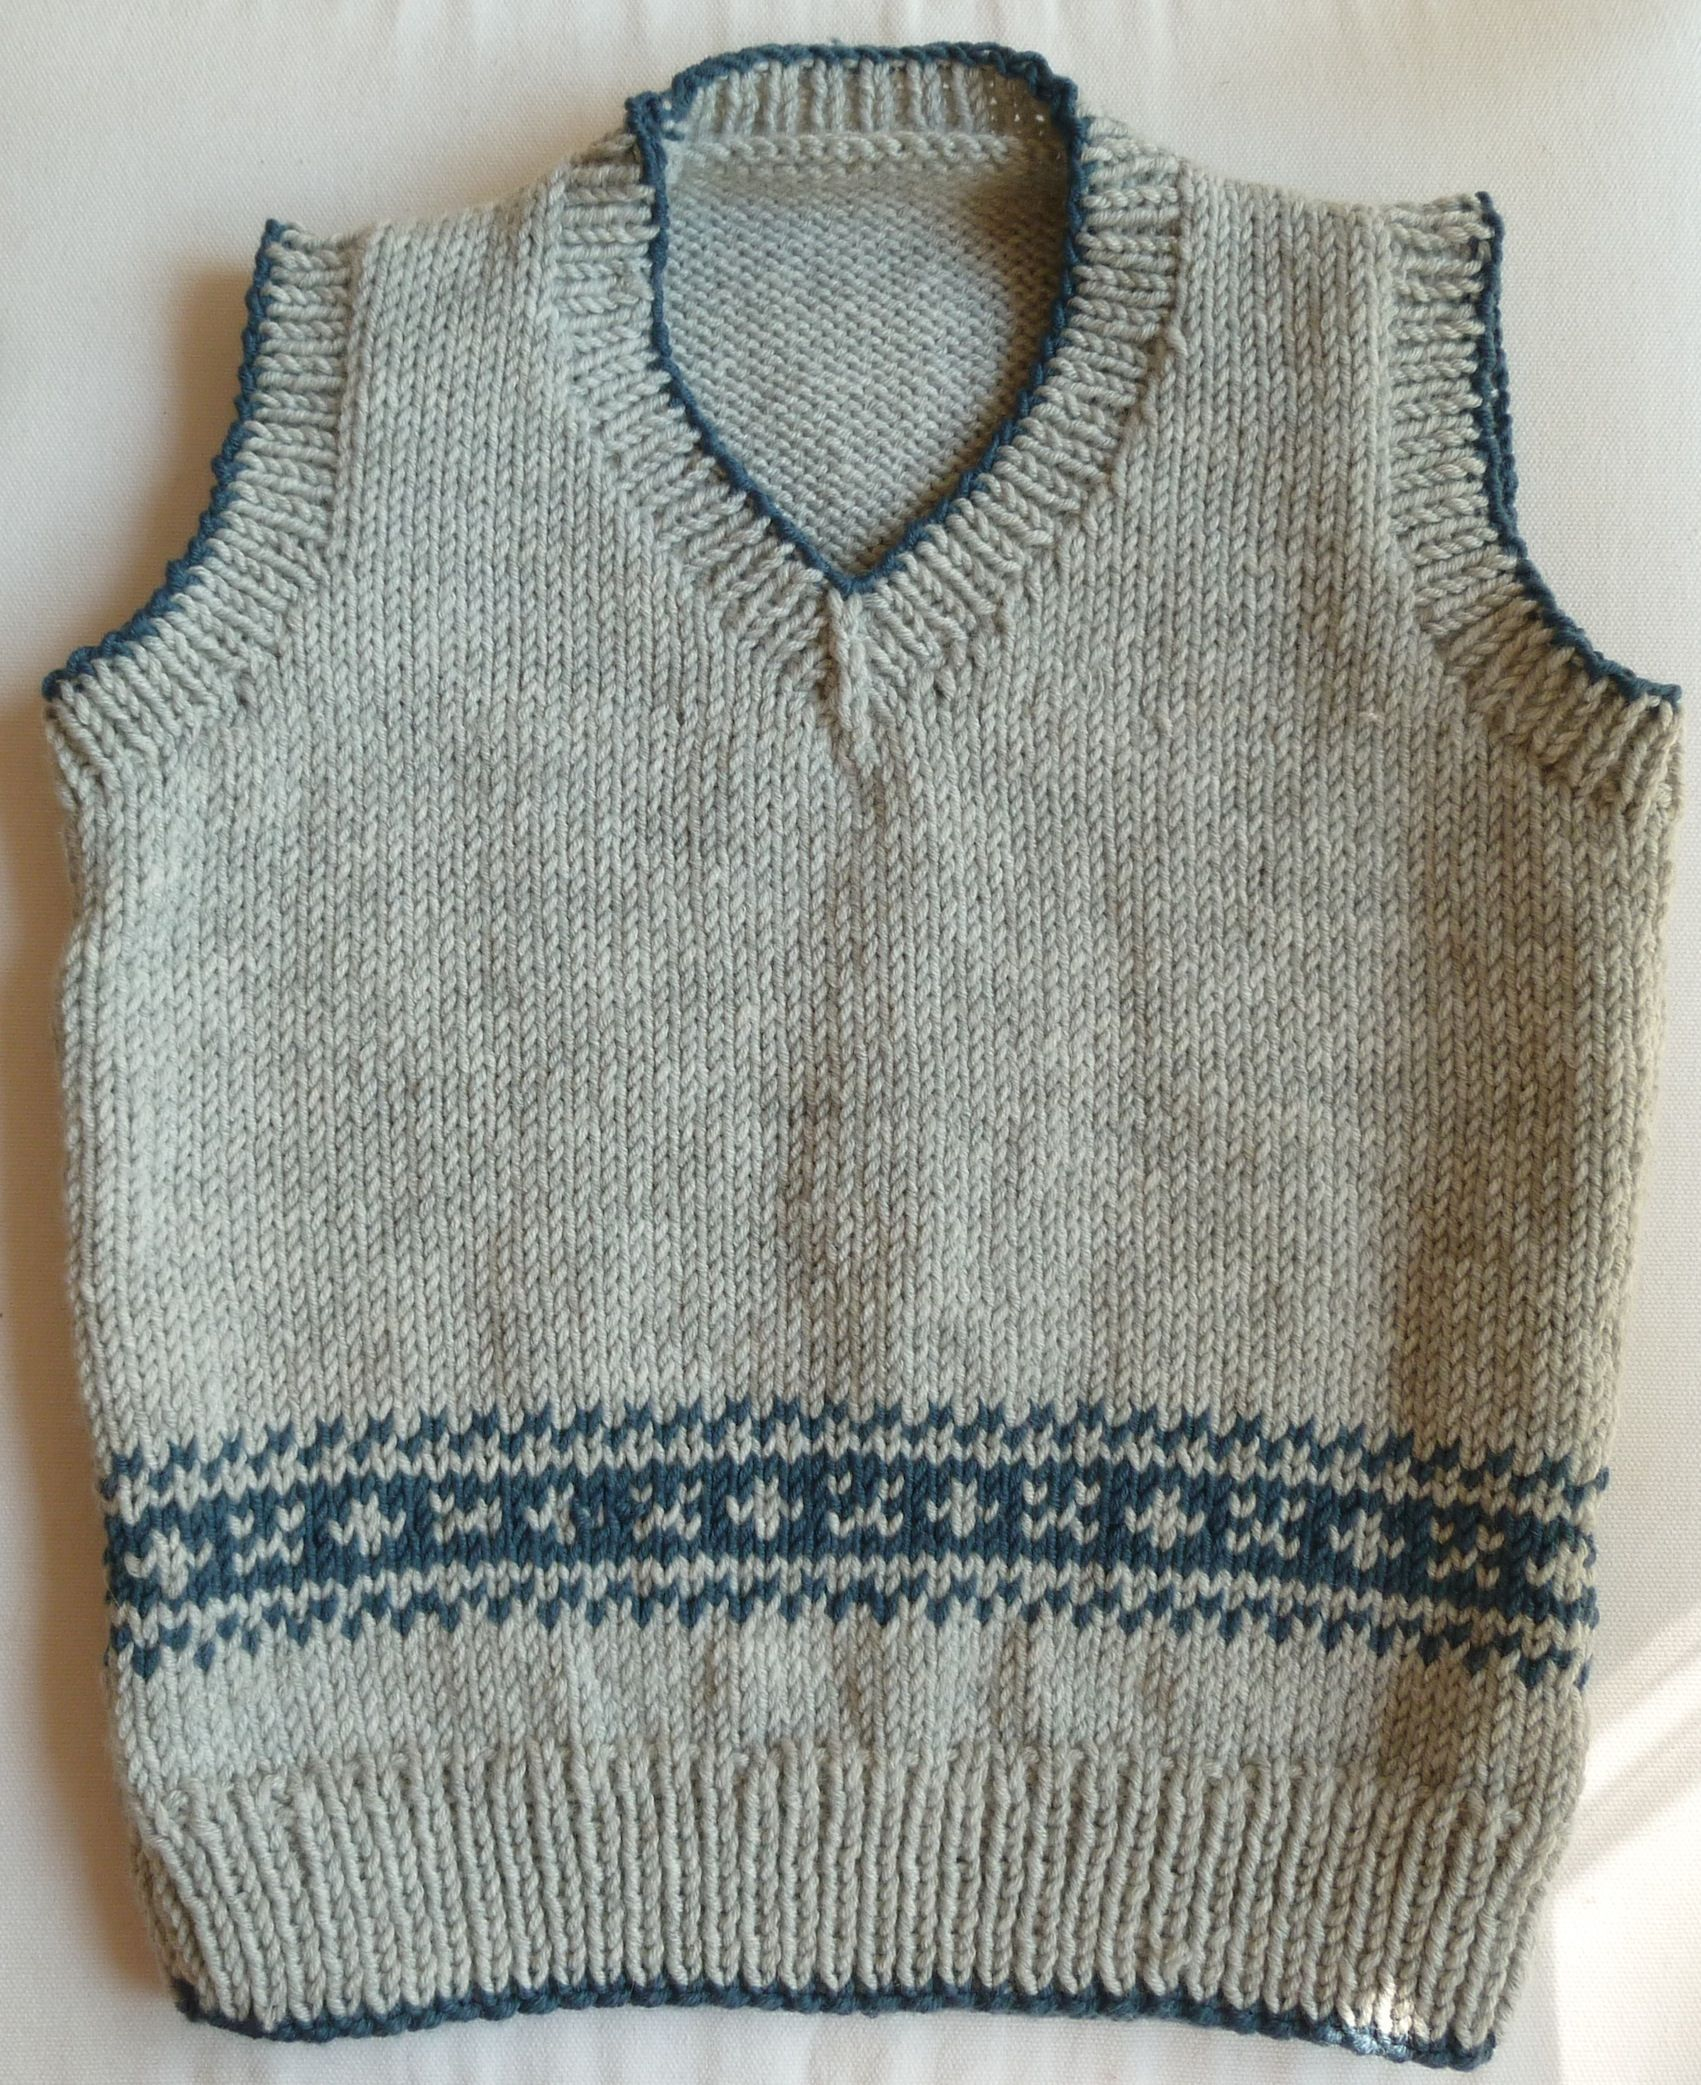 Vintage knit tank top | Wool | Sleeveless pullover | Grey with blue border pattern | School style